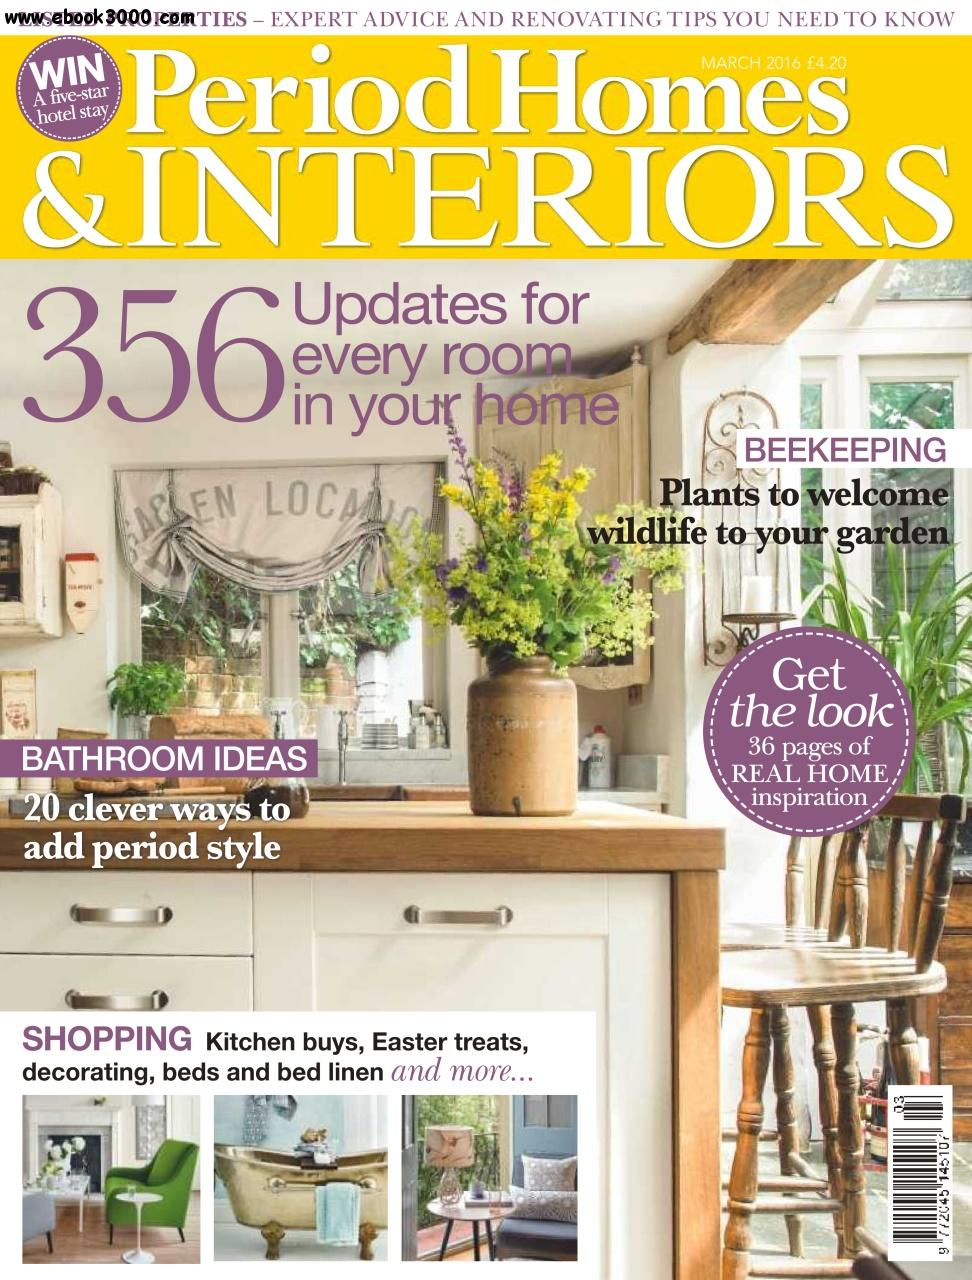 Period Homes & Interiors - March 2016 free download